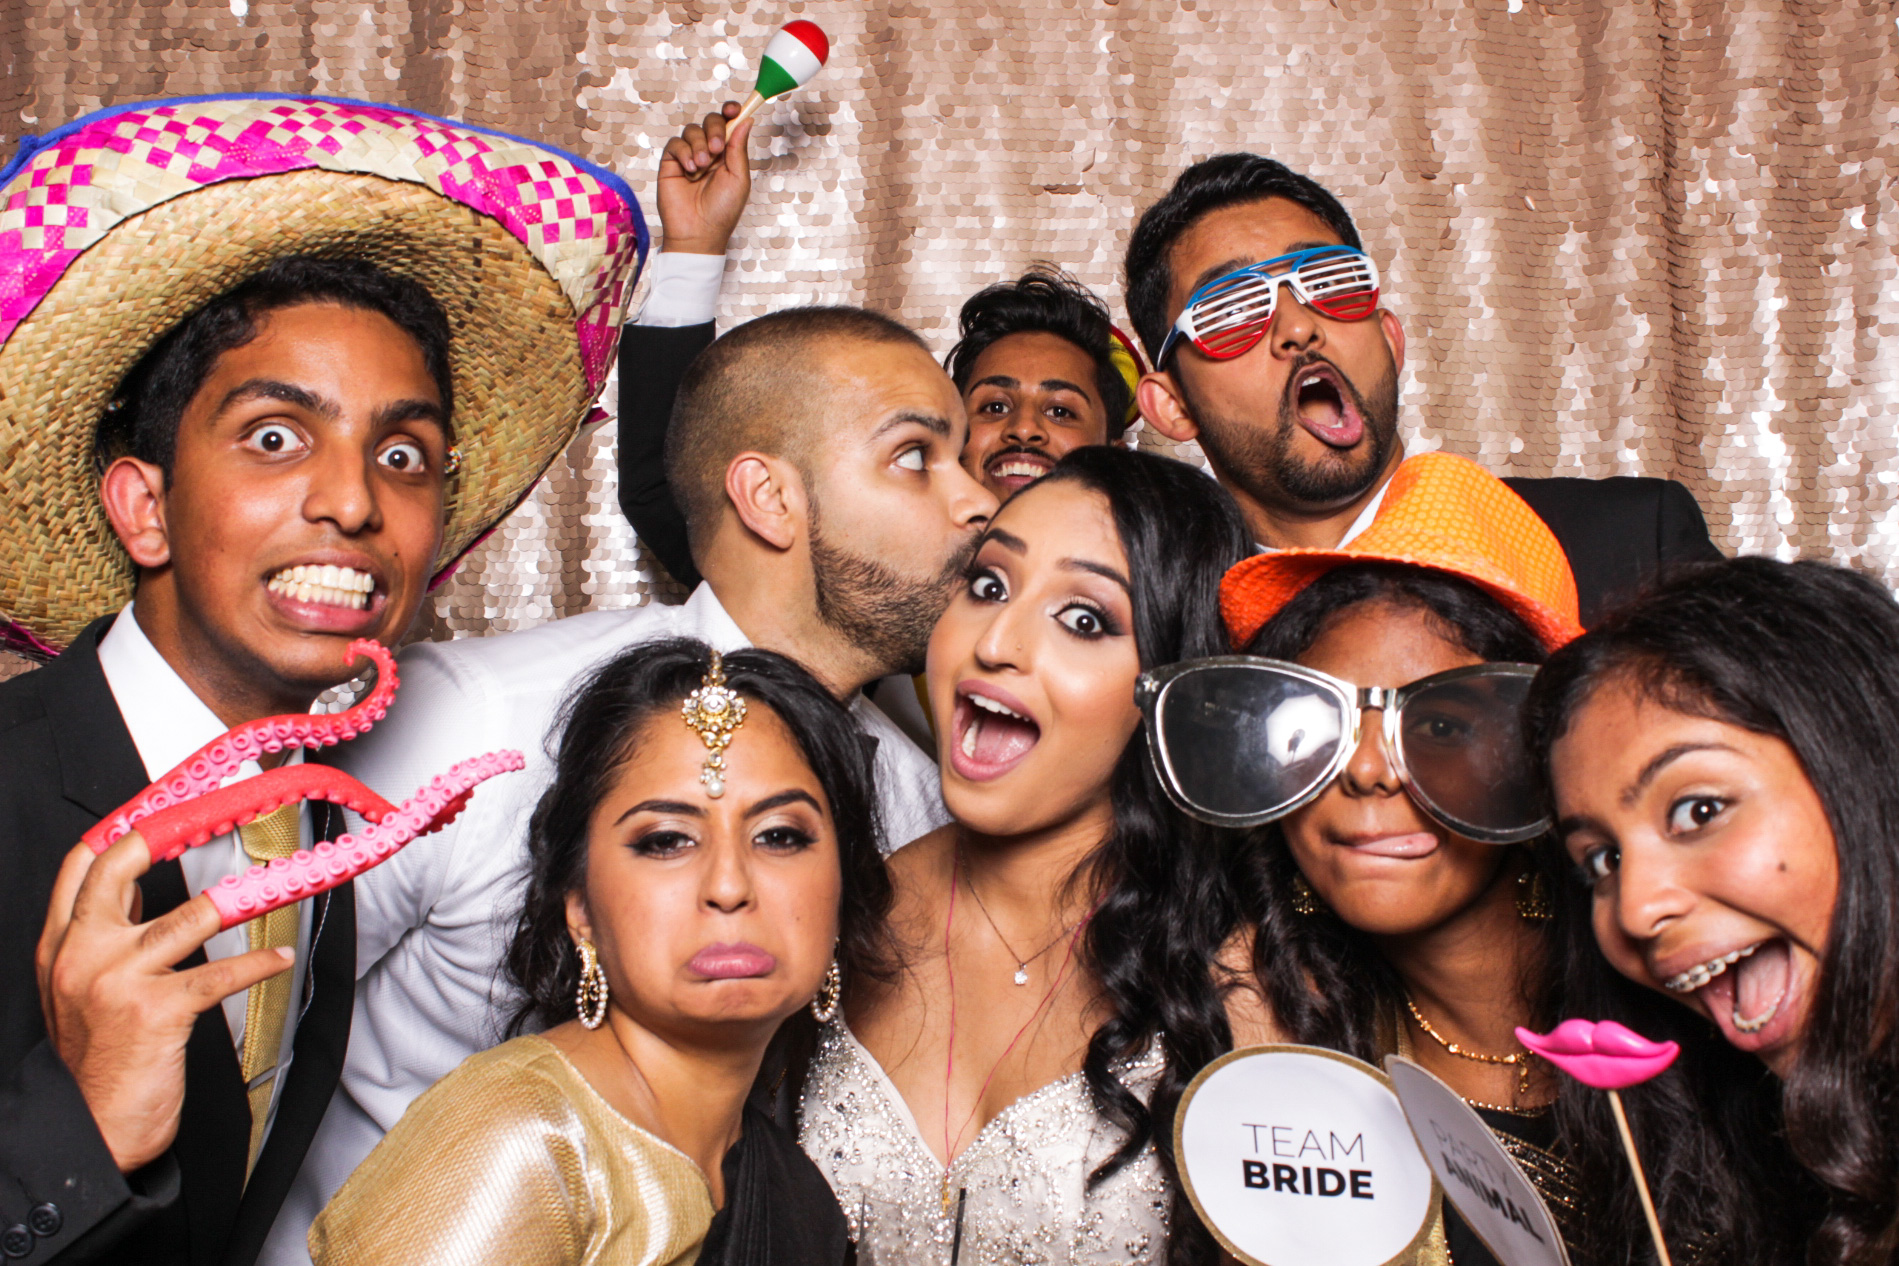 A bride being kissed by the groom surrounded by friends pulling fun faces with props in the pasadena photo booth